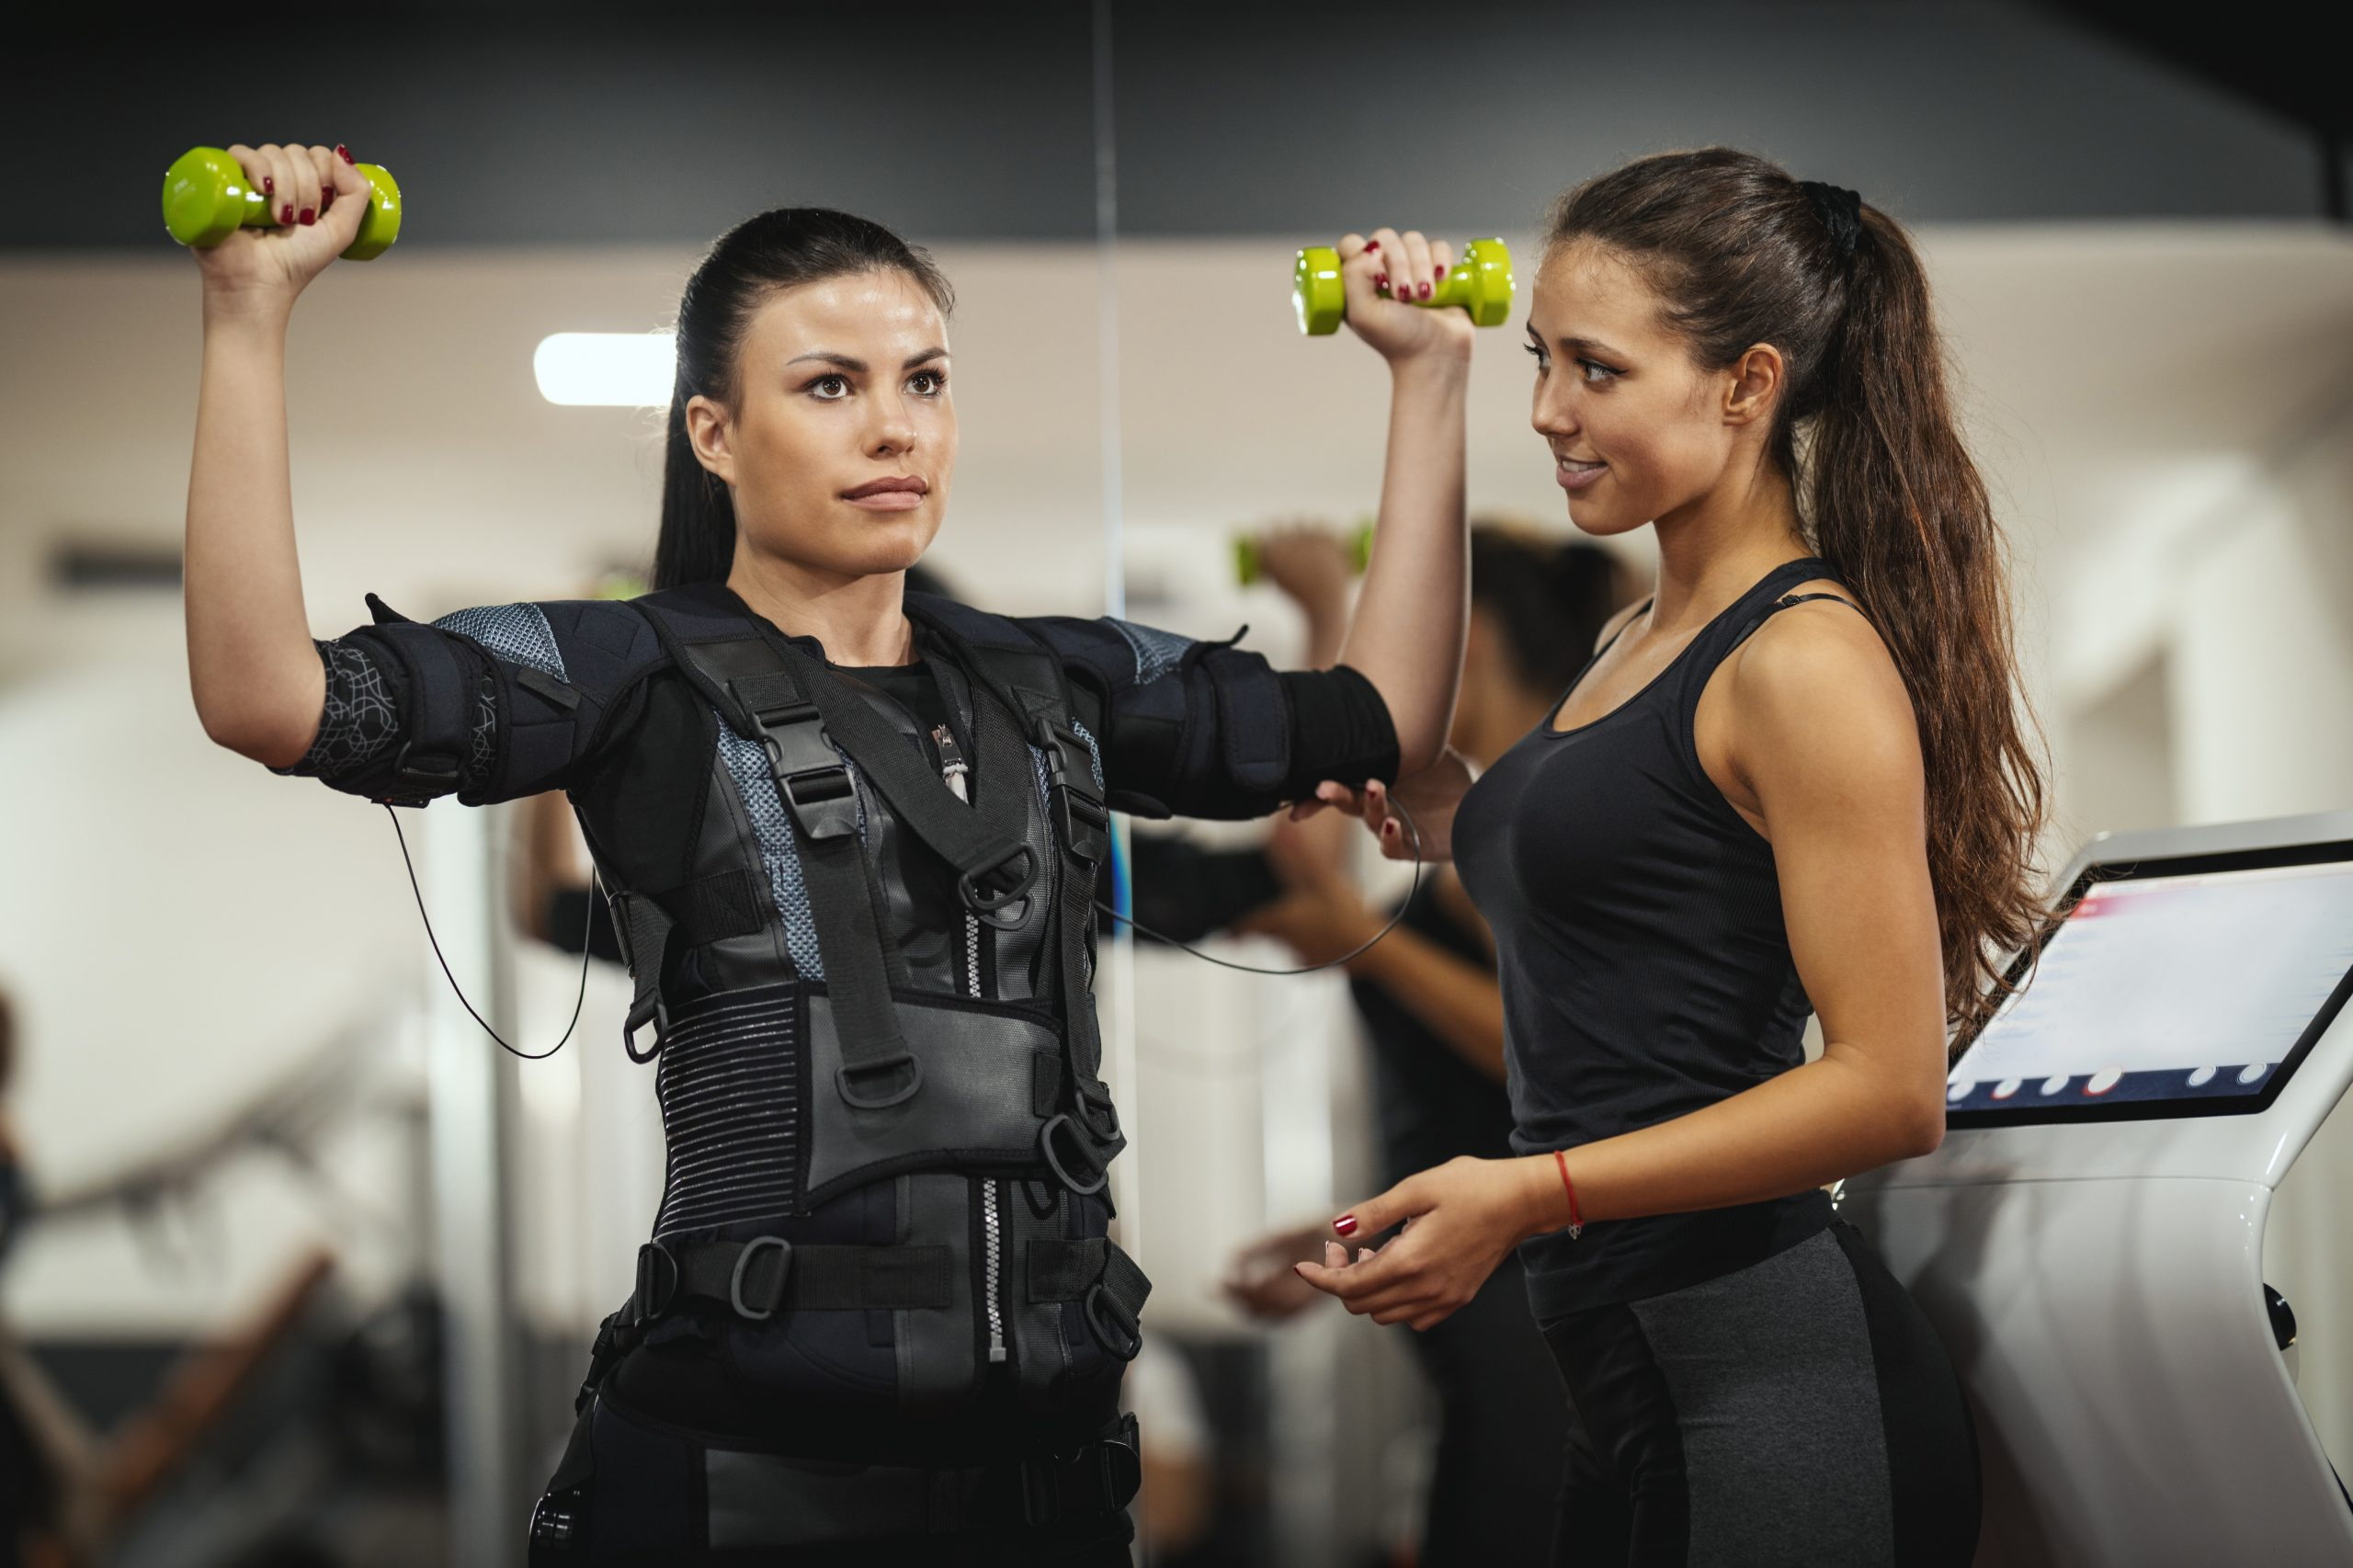 Dig out your Dumbbells with the EMS Training